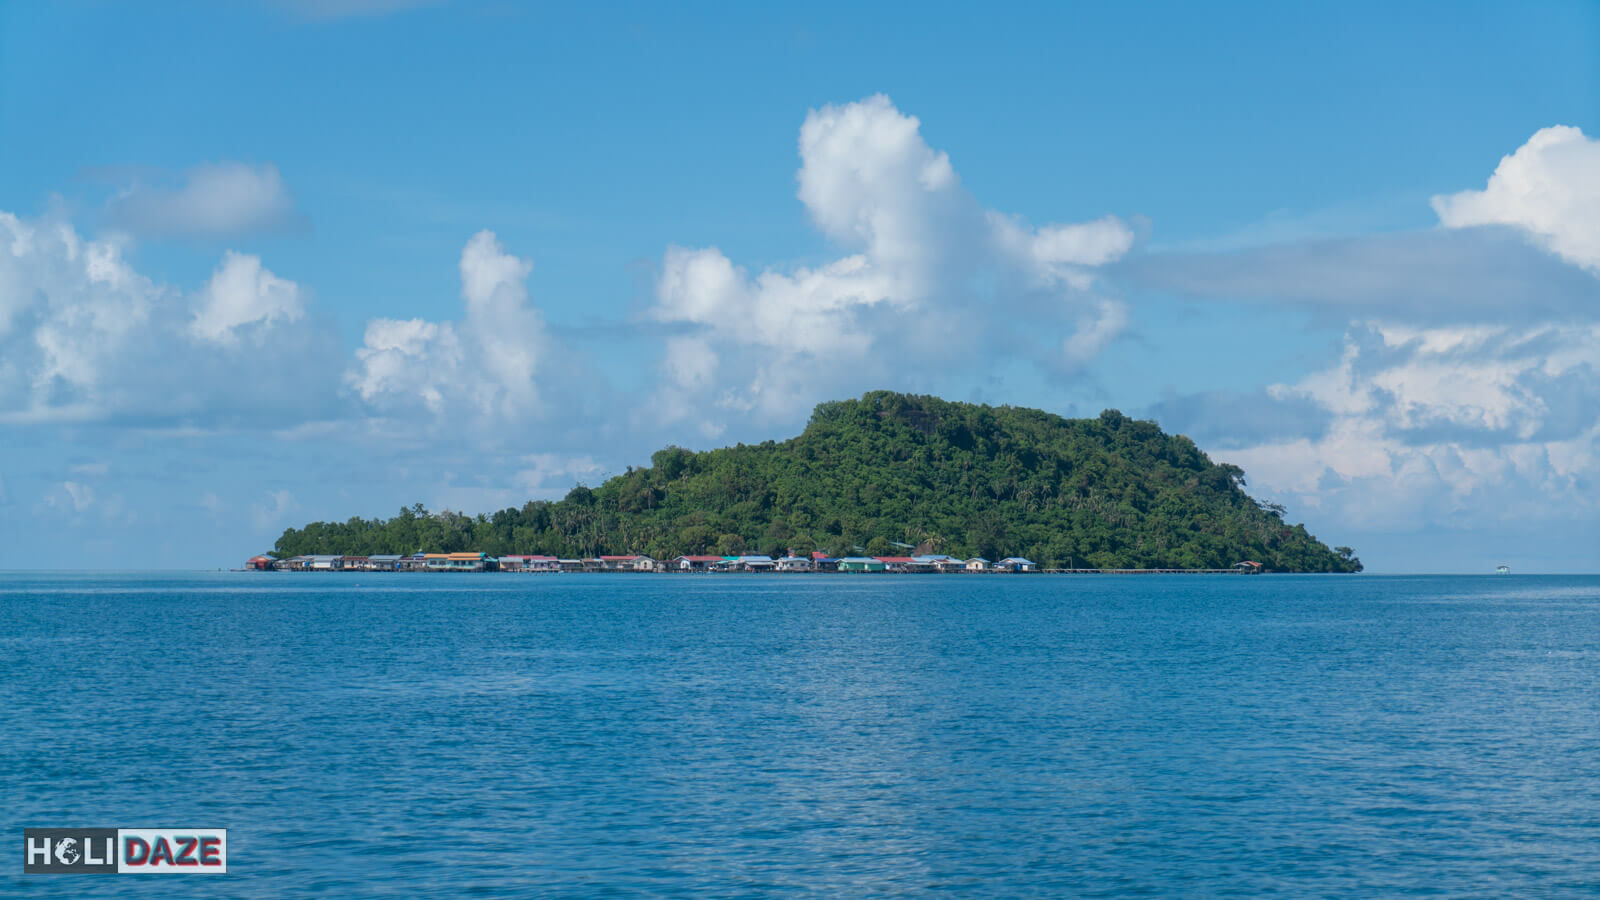 Mabul Island off the coast of Semporna, Sabah -- a great place for scuba diving